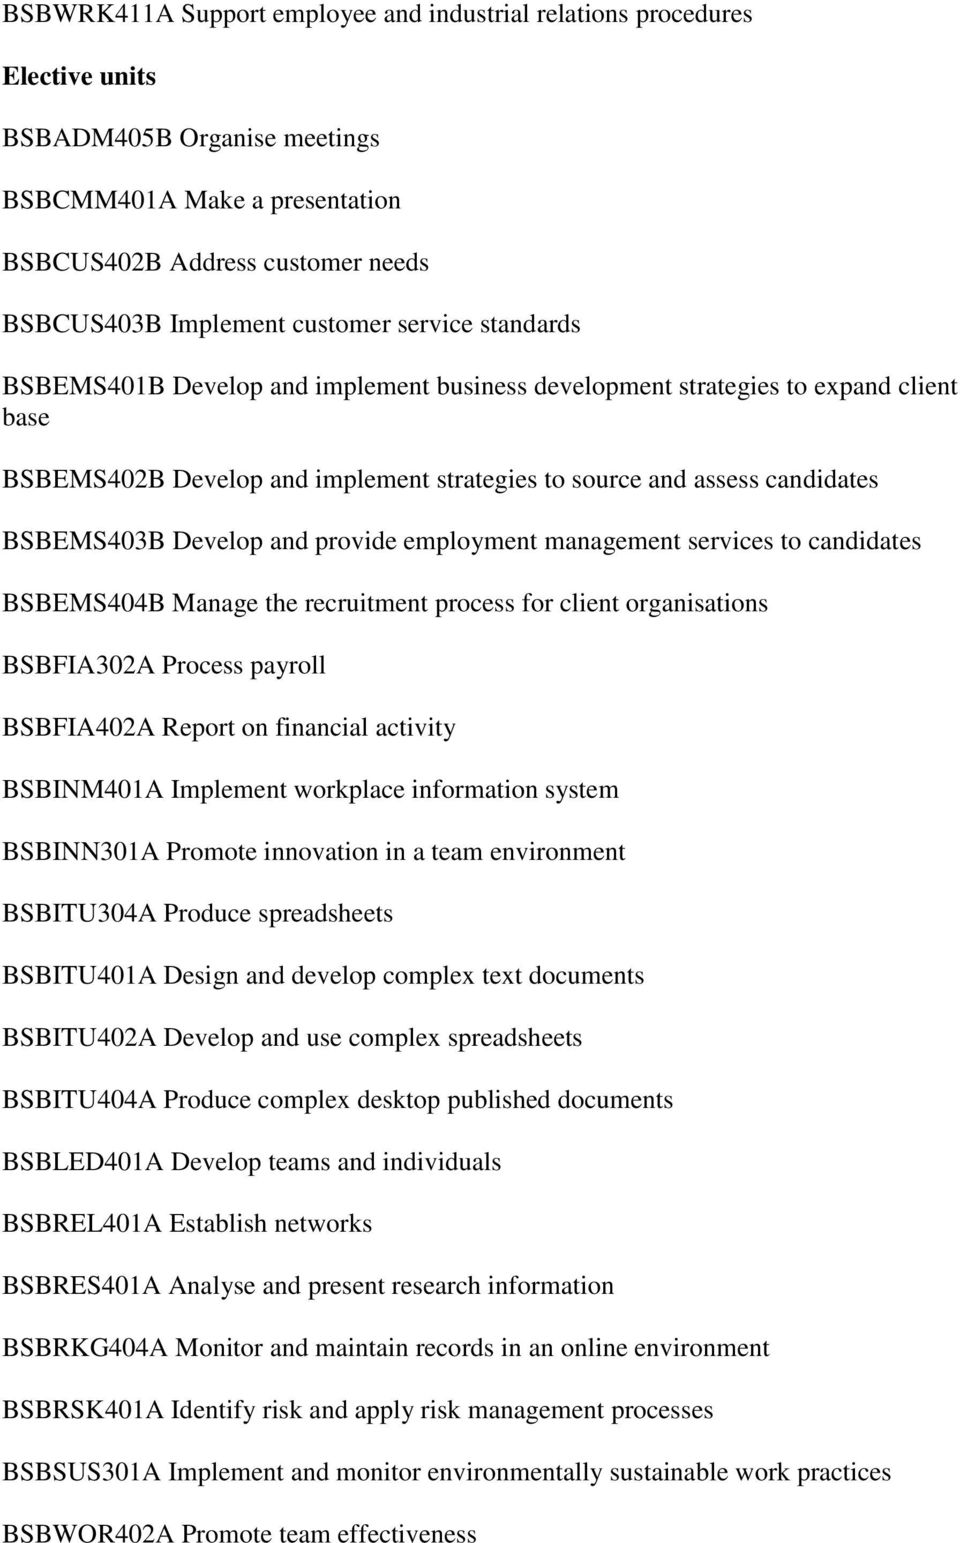 BSBEMS403B Develop and provide employment management services to candidates BSBEMS404B Manage the recruitment process for client organisations BSBFIA302A Process payroll BSBFIA402A Report on